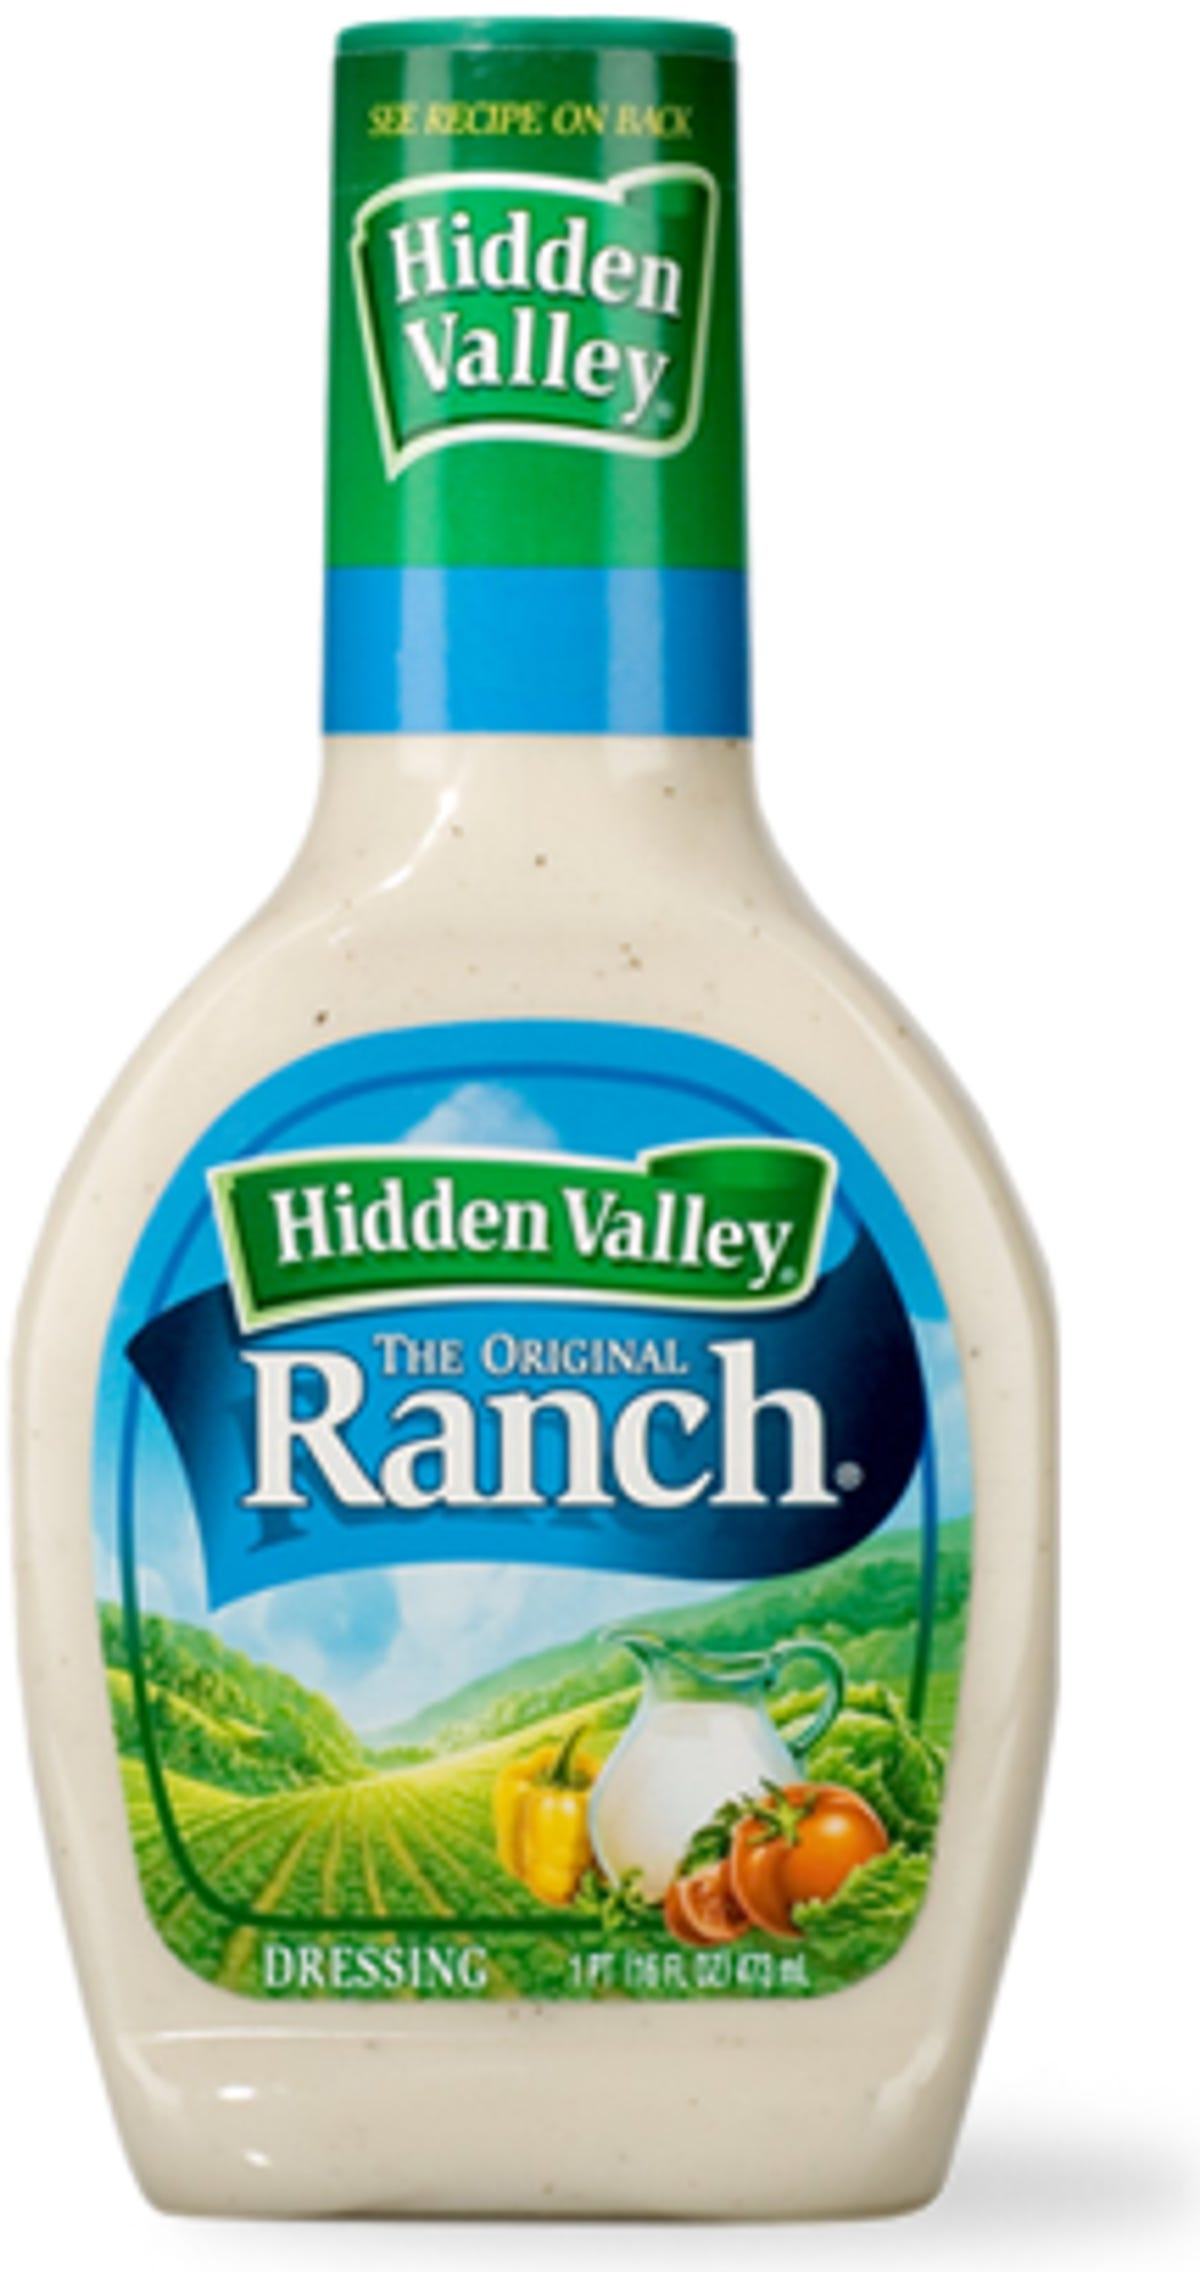 It\'s official: Iowa really, really loves ranch dressing.